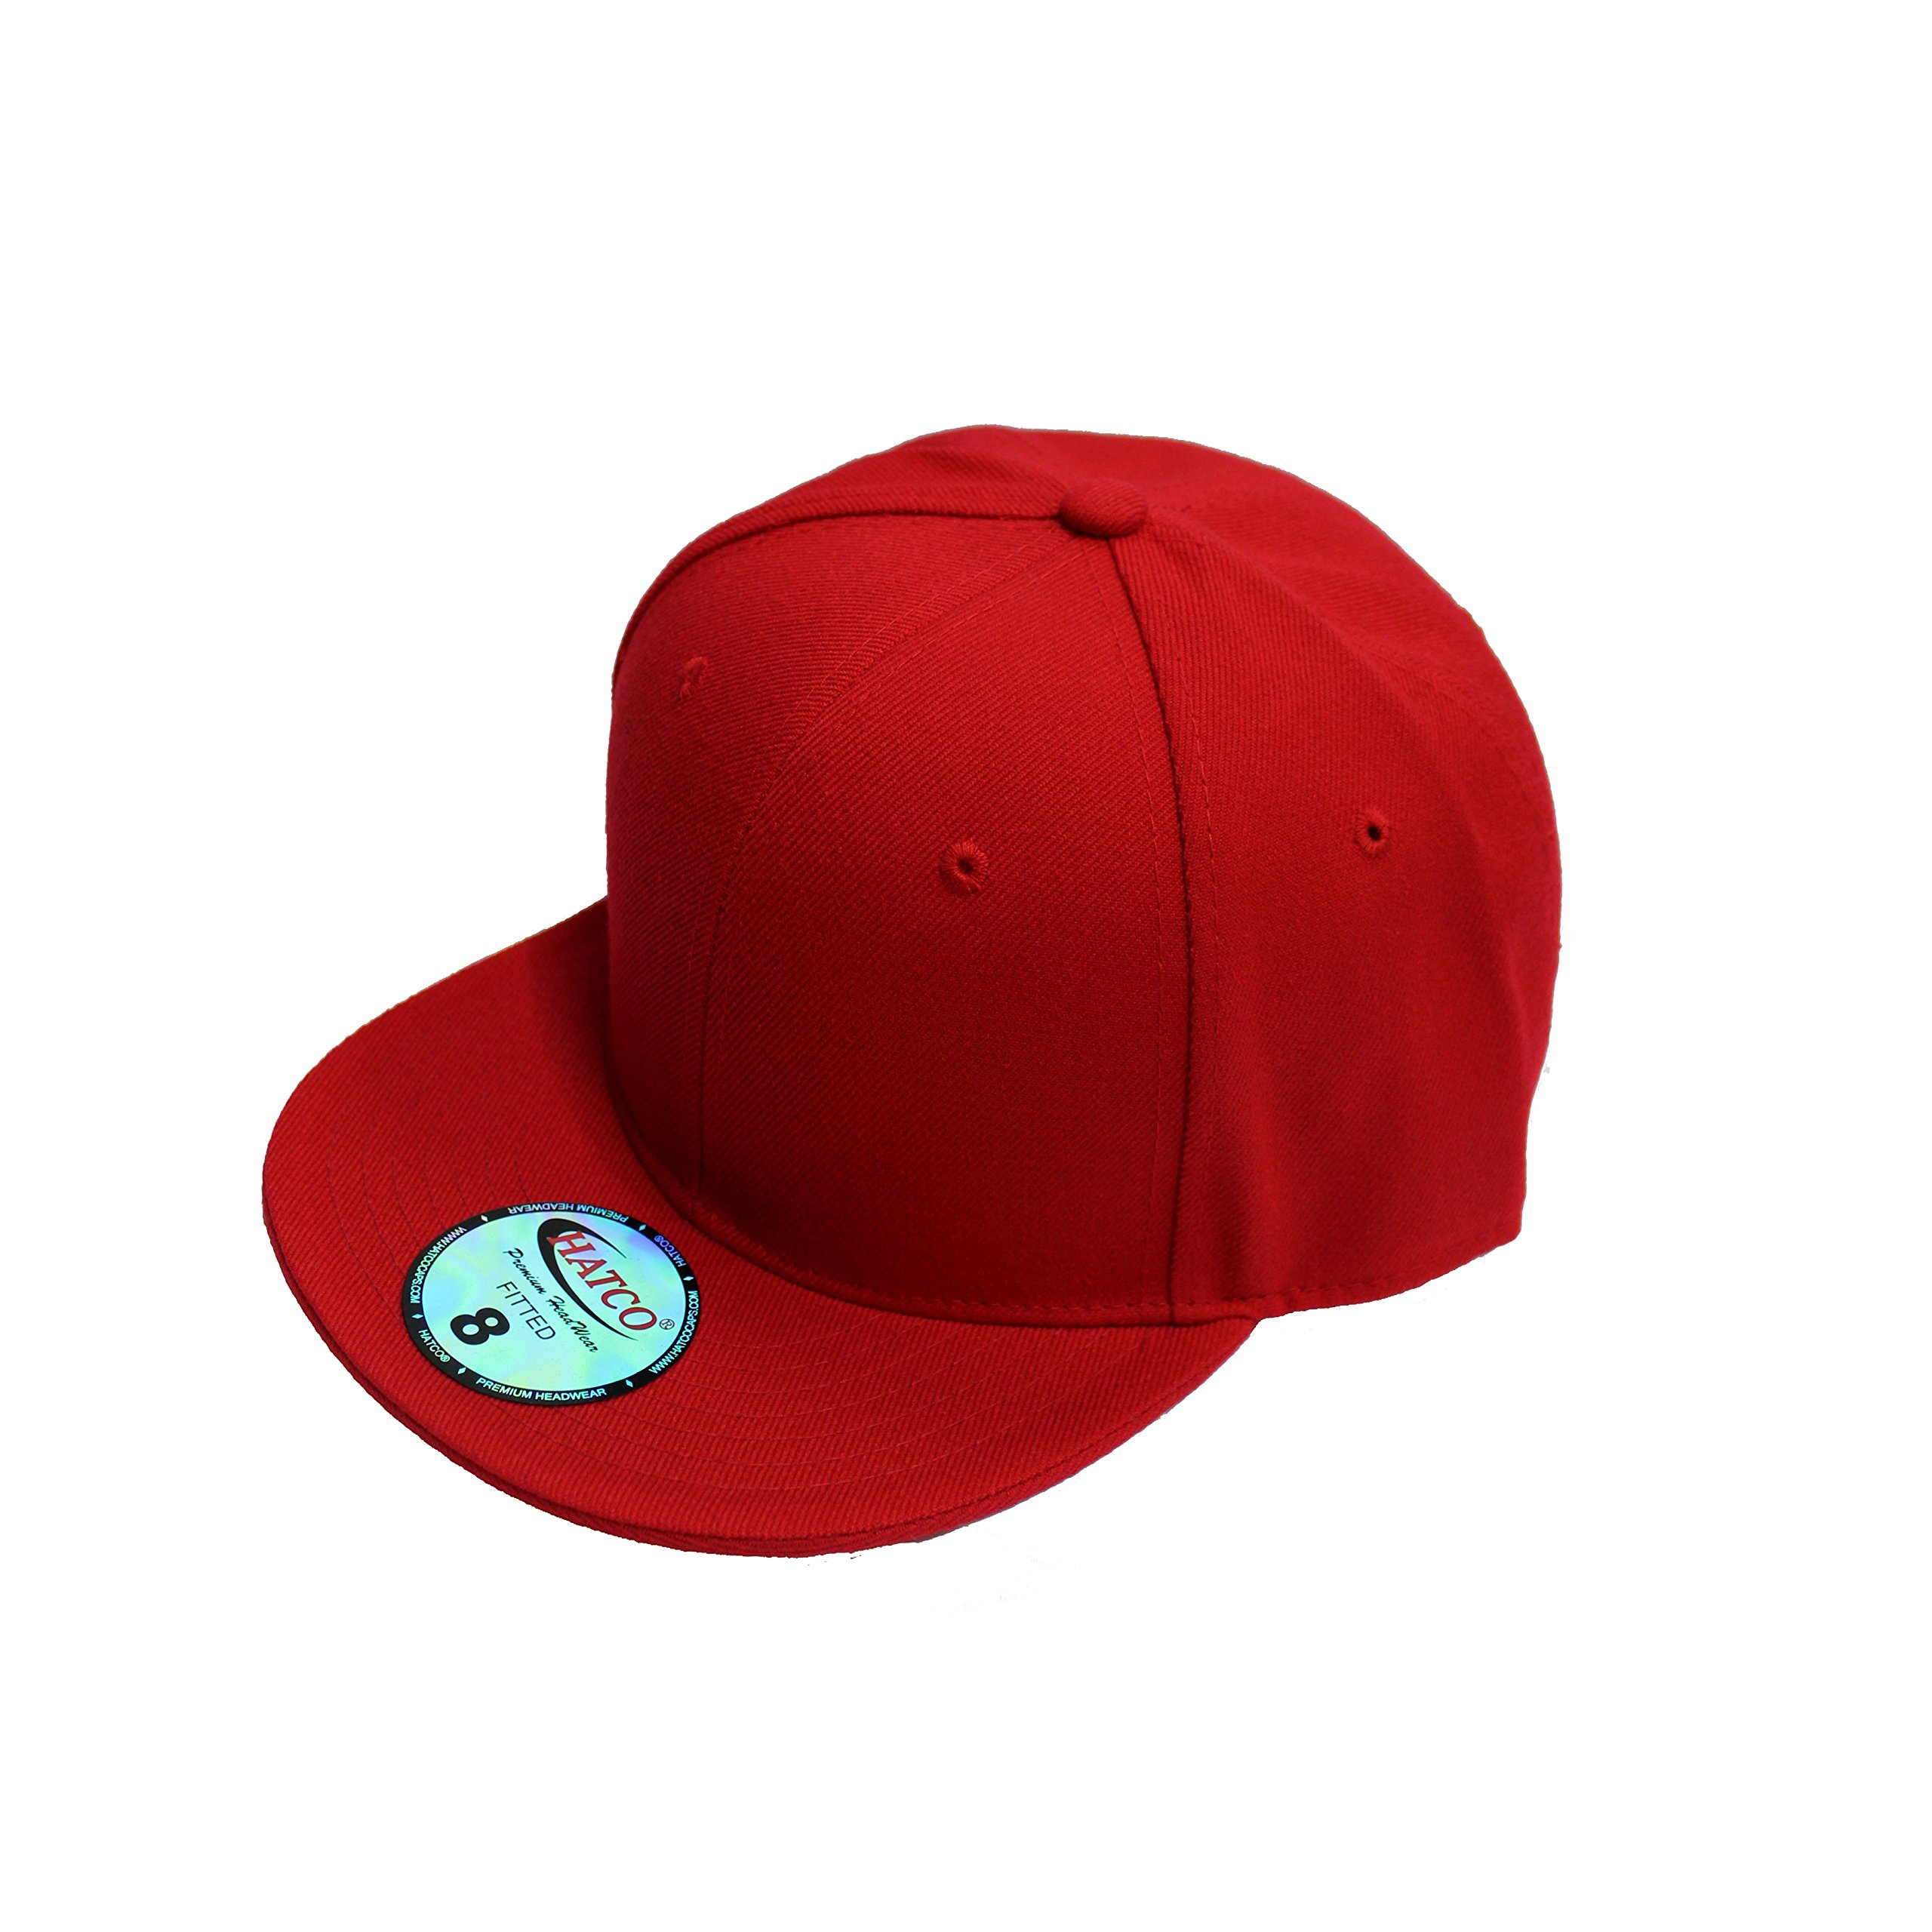 The Real Original Fitted Flat-Bill Hats by HATCO True-Fit